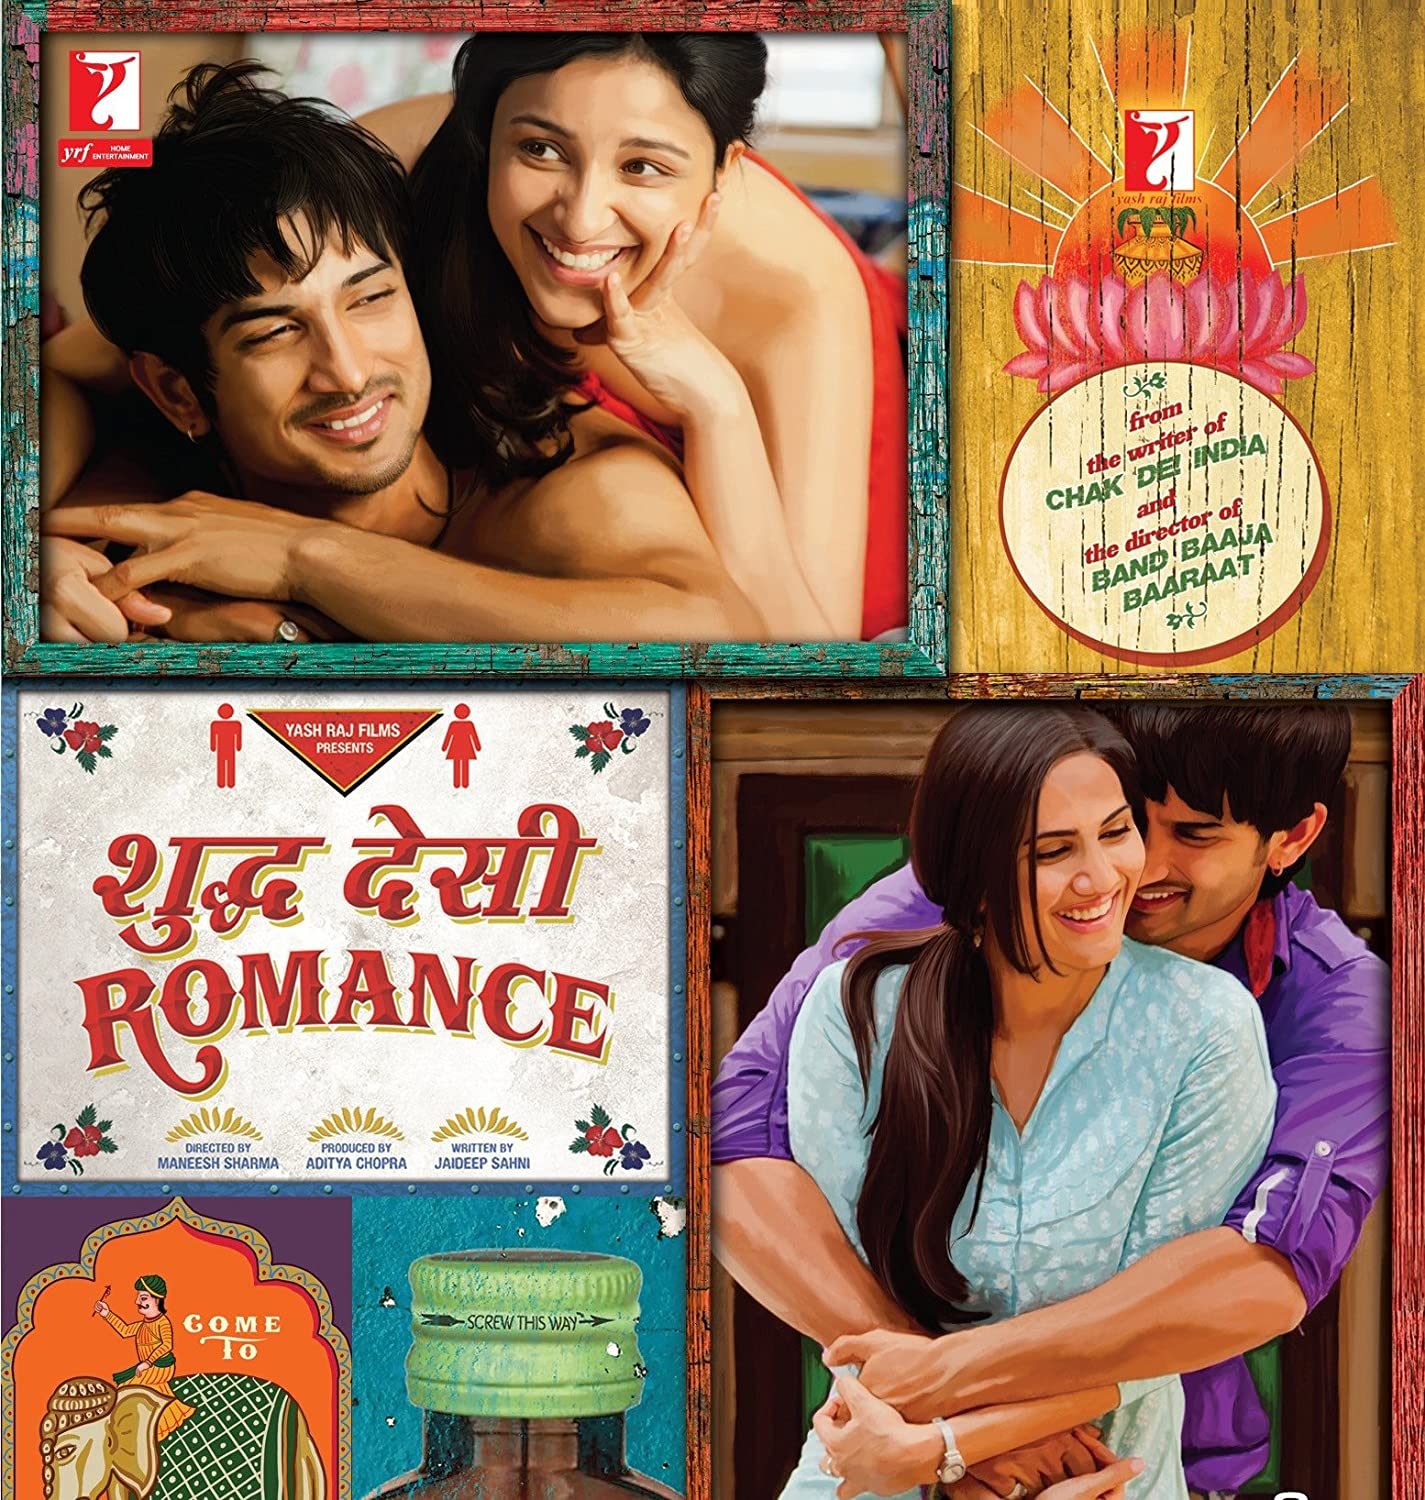 Shuddh Desi Romance (2013) Hindi Movie 1GB Download